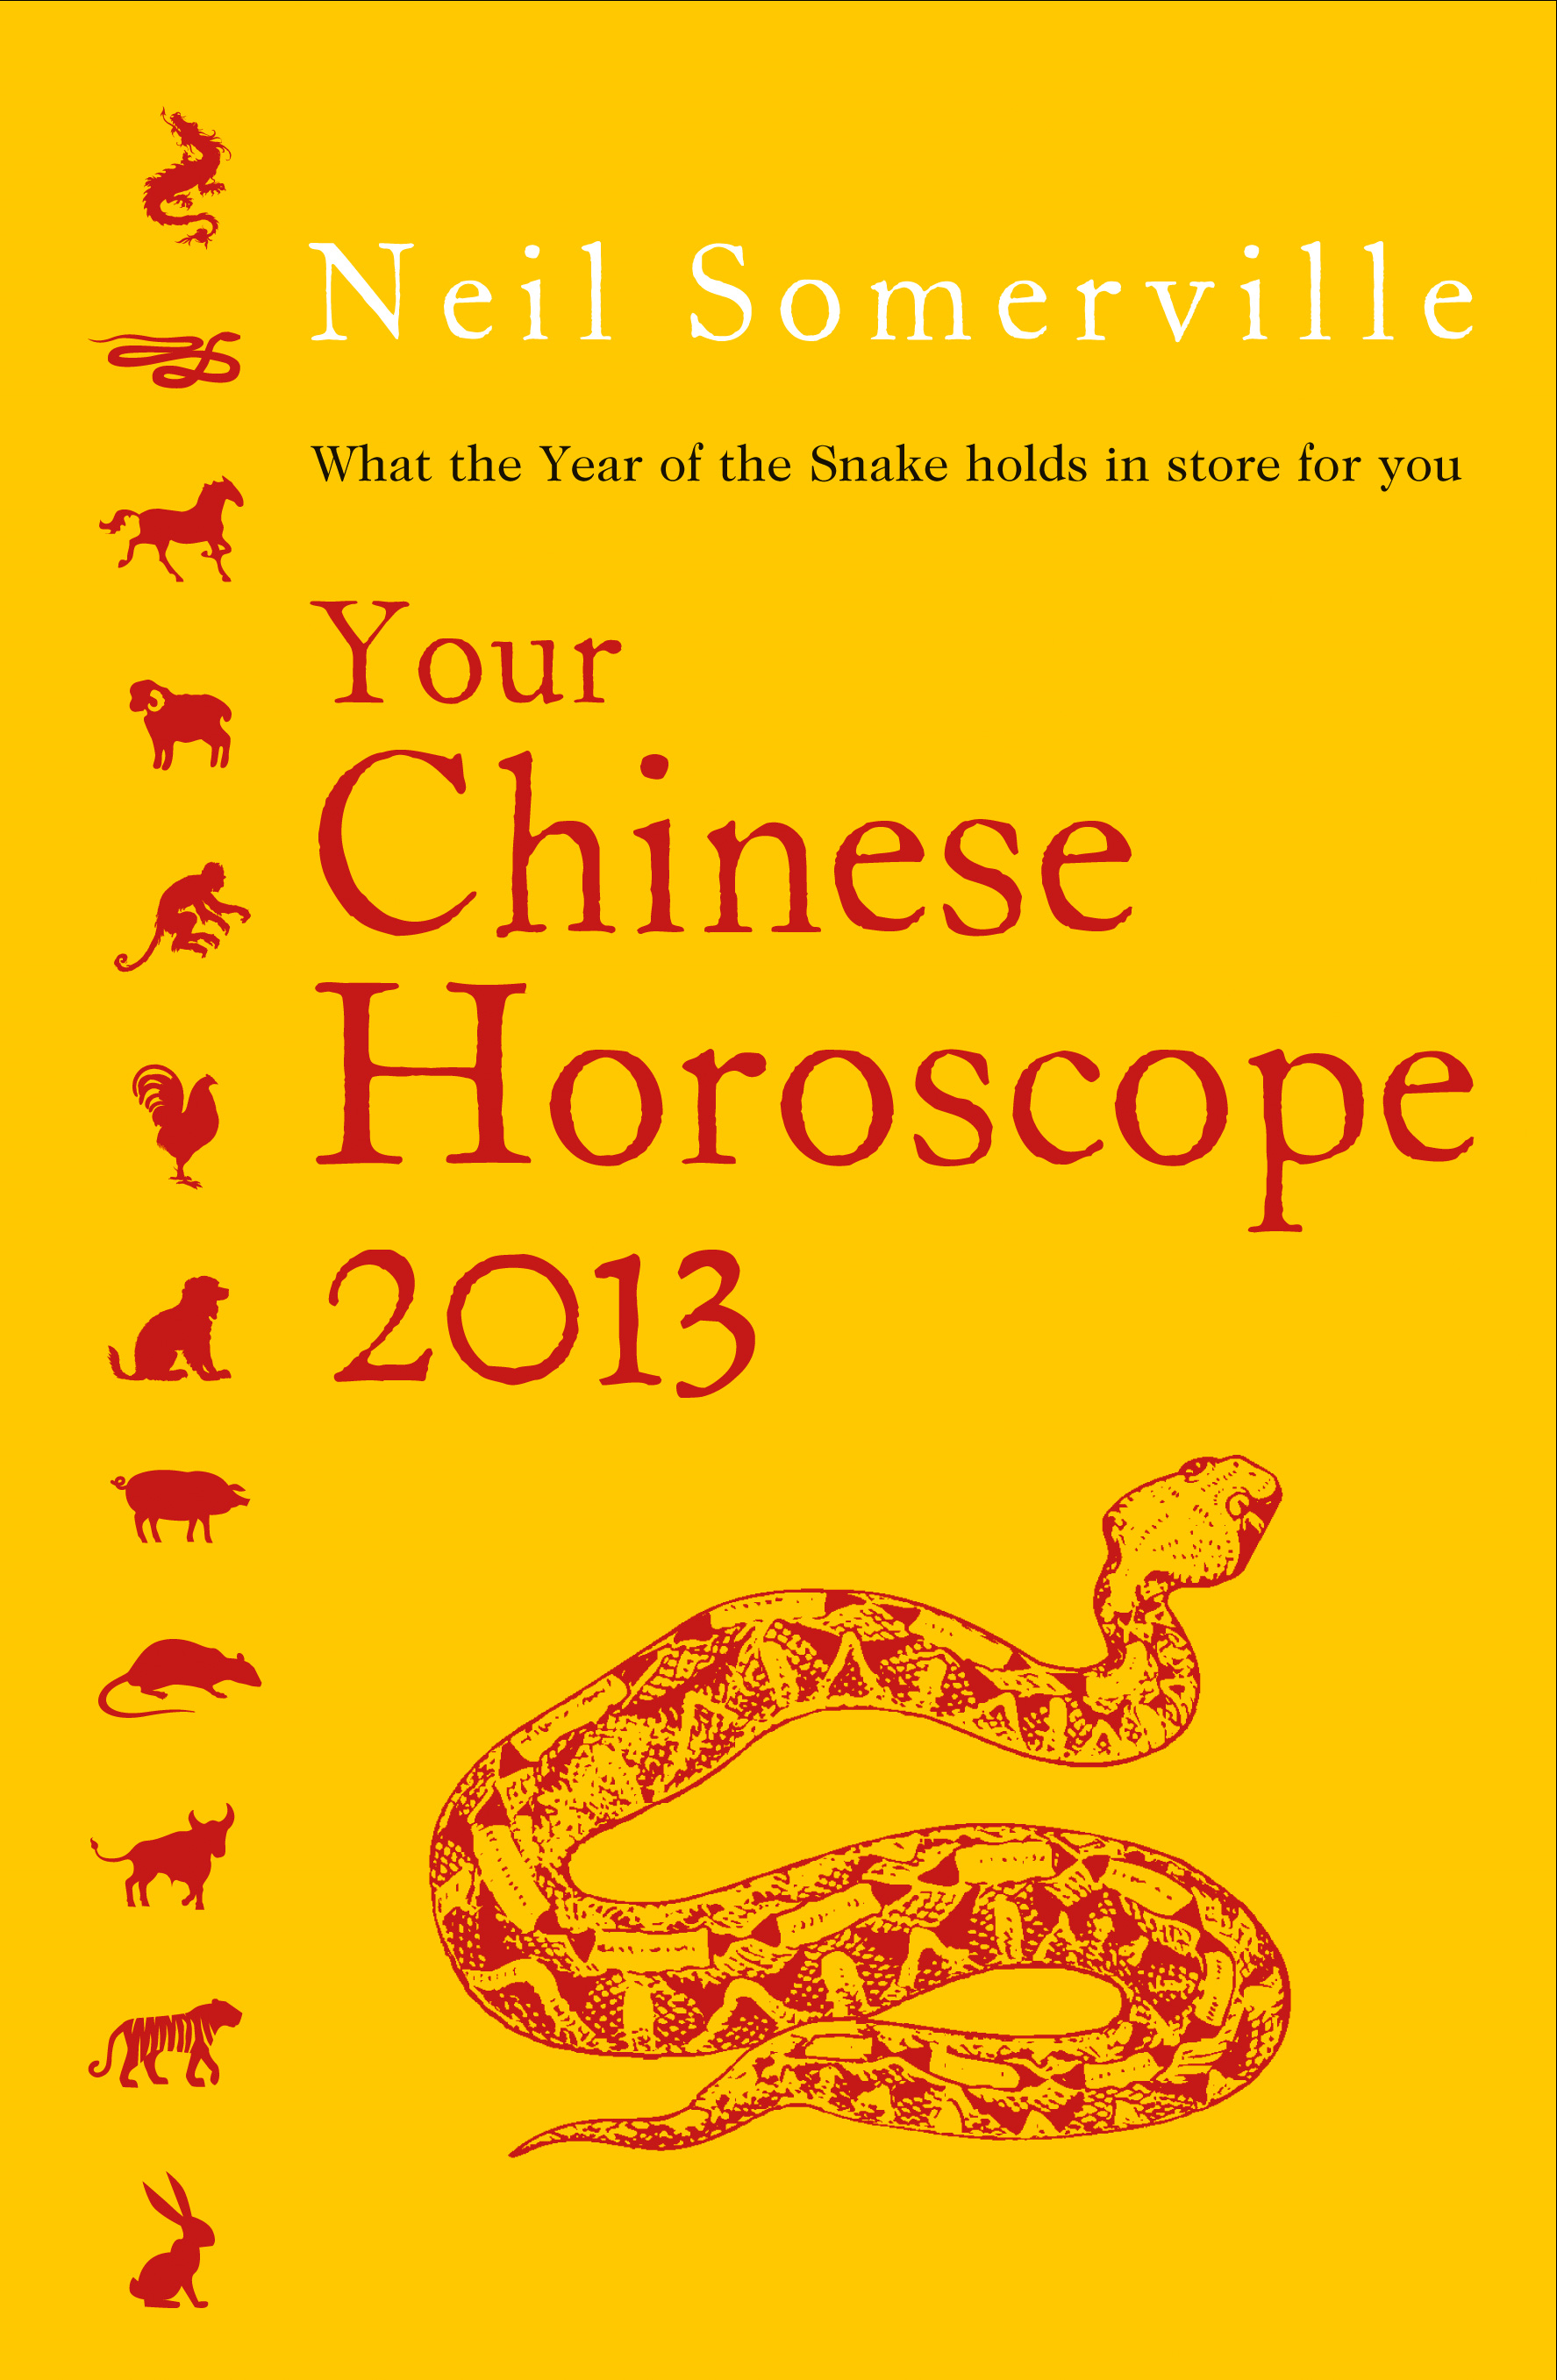 Your Chinese Horoscope 2013: What the year of the snake holds in store for you By: Neil Somerville